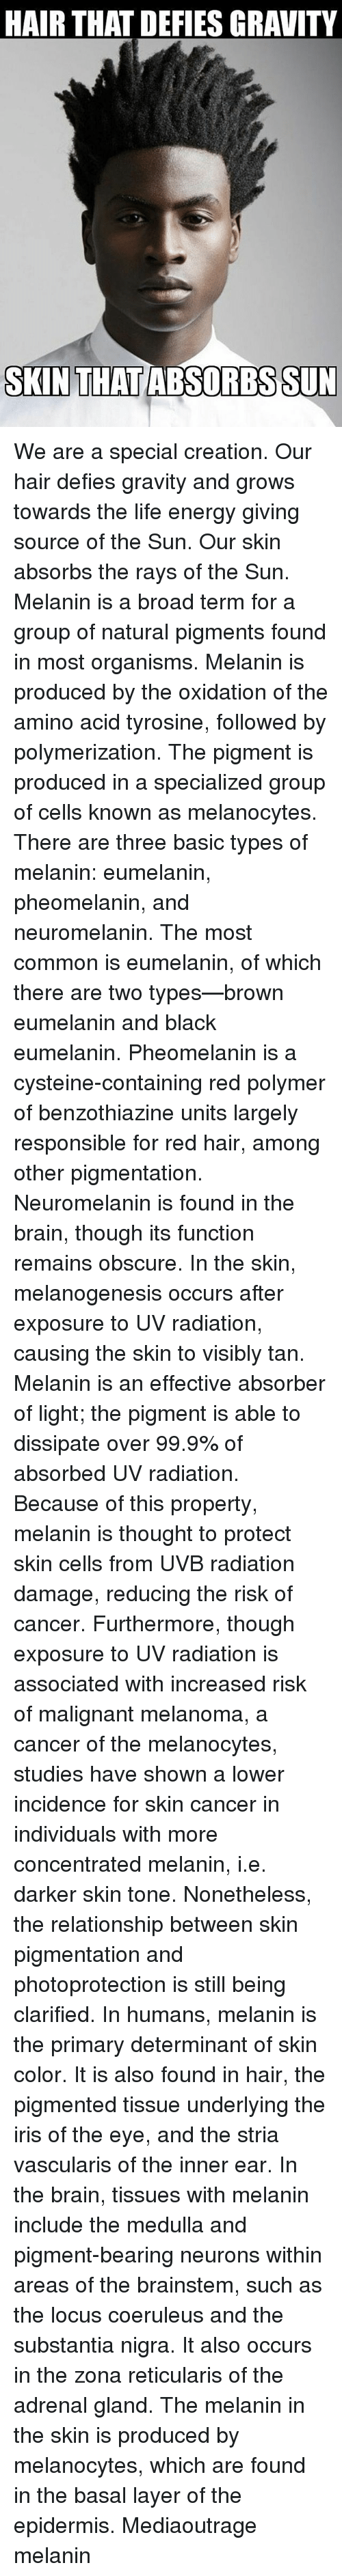 amino acids: HAIR THAT DEFIES GRAVITY  SKIN THATABSORBS SUN We are a special creation. Our hair defies gravity and grows towards the life energy giving source of the Sun. Our skin absorbs the rays of the Sun. Melanin is a broad term for a group of natural pigments found in most organisms. Melanin is produced by the oxidation of the amino acid tyrosine, followed by polymerization. The pigment is produced in a specialized group of cells known as melanocytes. There are three basic types of melanin: eumelanin, pheomelanin, and neuromelanin. The most common is eumelanin, of which there are two types—brown eumelanin and black eumelanin. Pheomelanin is a cysteine-containing red polymer of benzothiazine units largely responsible for red hair, among other pigmentation. Neuromelanin is found in the brain, though its function remains obscure. In the skin, melanogenesis occurs after exposure to UV radiation, causing the skin to visibly tan. Melanin is an effective absorber of light; the pigment is able to dissipate over 99.9% of absorbed UV radiation. Because of this property, melanin is thought to protect skin cells from UVB radiation damage, reducing the risk of cancer. Furthermore, though exposure to UV radiation is associated with increased risk of malignant melanoma, a cancer of the melanocytes, studies have shown a lower incidence for skin cancer in individuals with more concentrated melanin, i.e. darker skin tone. Nonetheless, the relationship between skin pigmentation and photoprotection is still being clarified. In humans, melanin is the primary determinant of skin color. It is also found in hair, the pigmented tissue underlying the iris of the eye, and the stria vascularis of the inner ear. In the brain, tissues with melanin include the medulla and pigment-bearing neurons within areas of the brainstem, such as the locus coeruleus and the substantia nigra. It also occurs in the zona reticularis of the adrenal gland. The melanin in the skin is produced by melanocytes, w